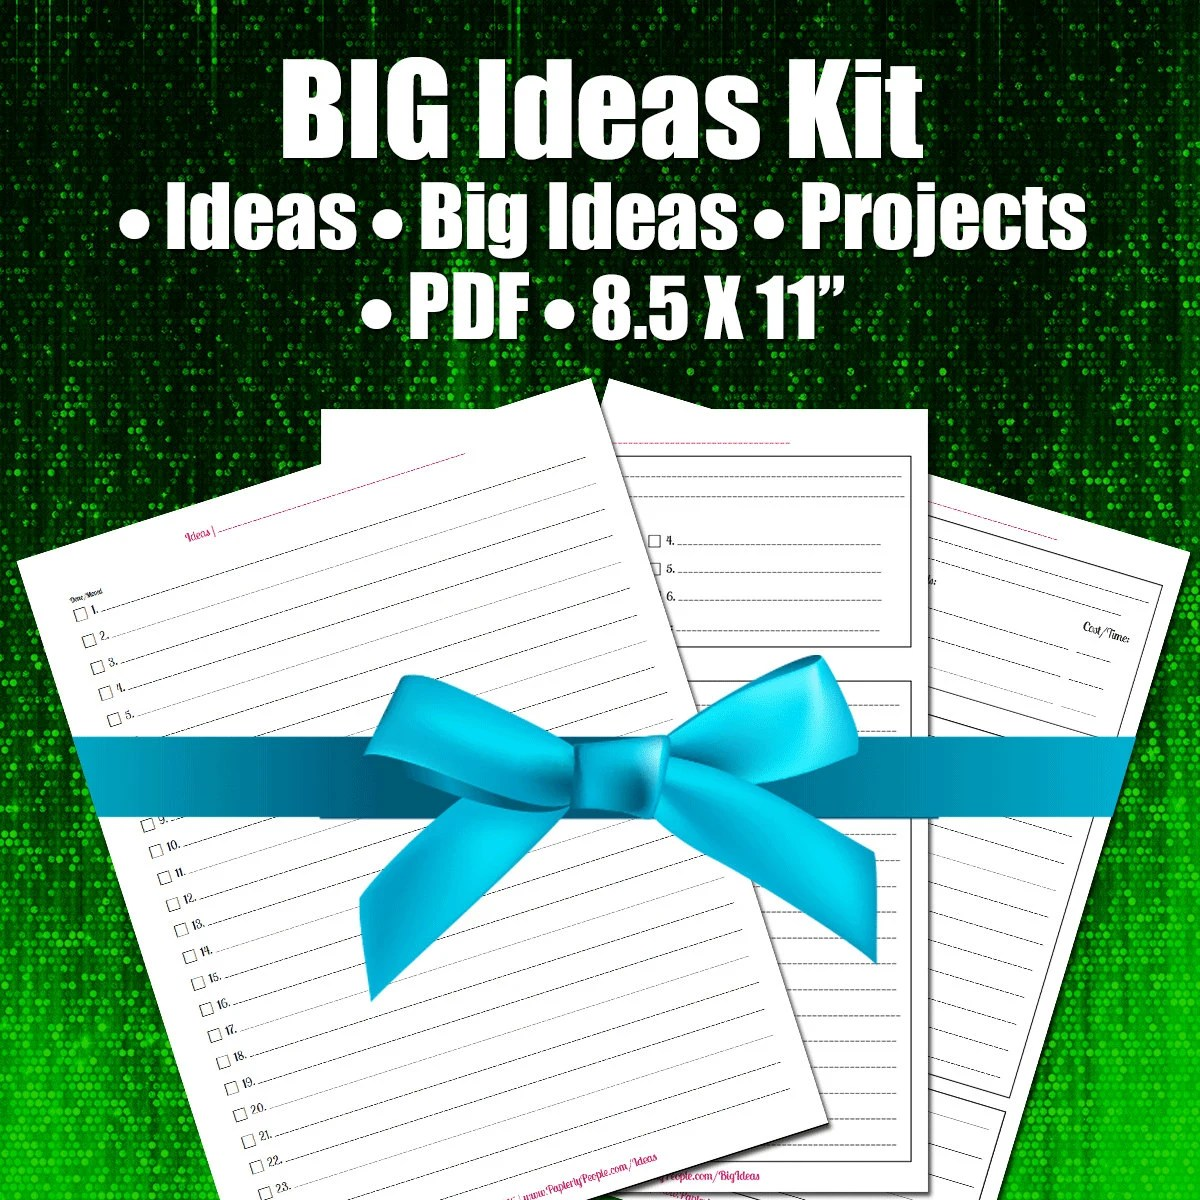 Big Ideas Kit Printable Planner Worksheets Business